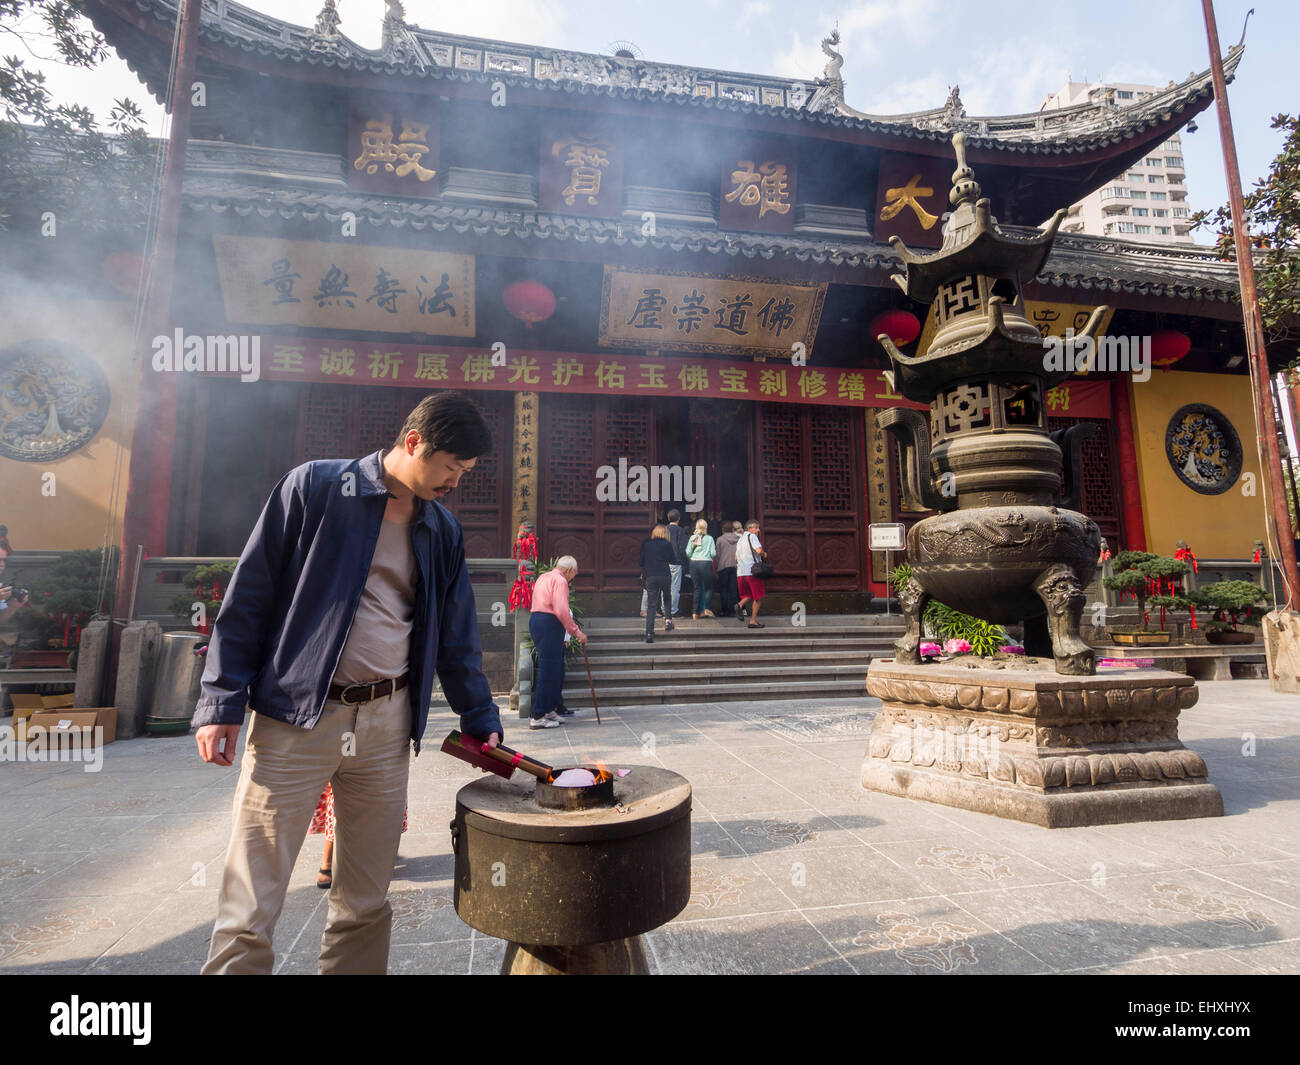 Man lighting joss stick incense at the courtyard of the Jade Buddha temple in Shanghai, China Stock Photo